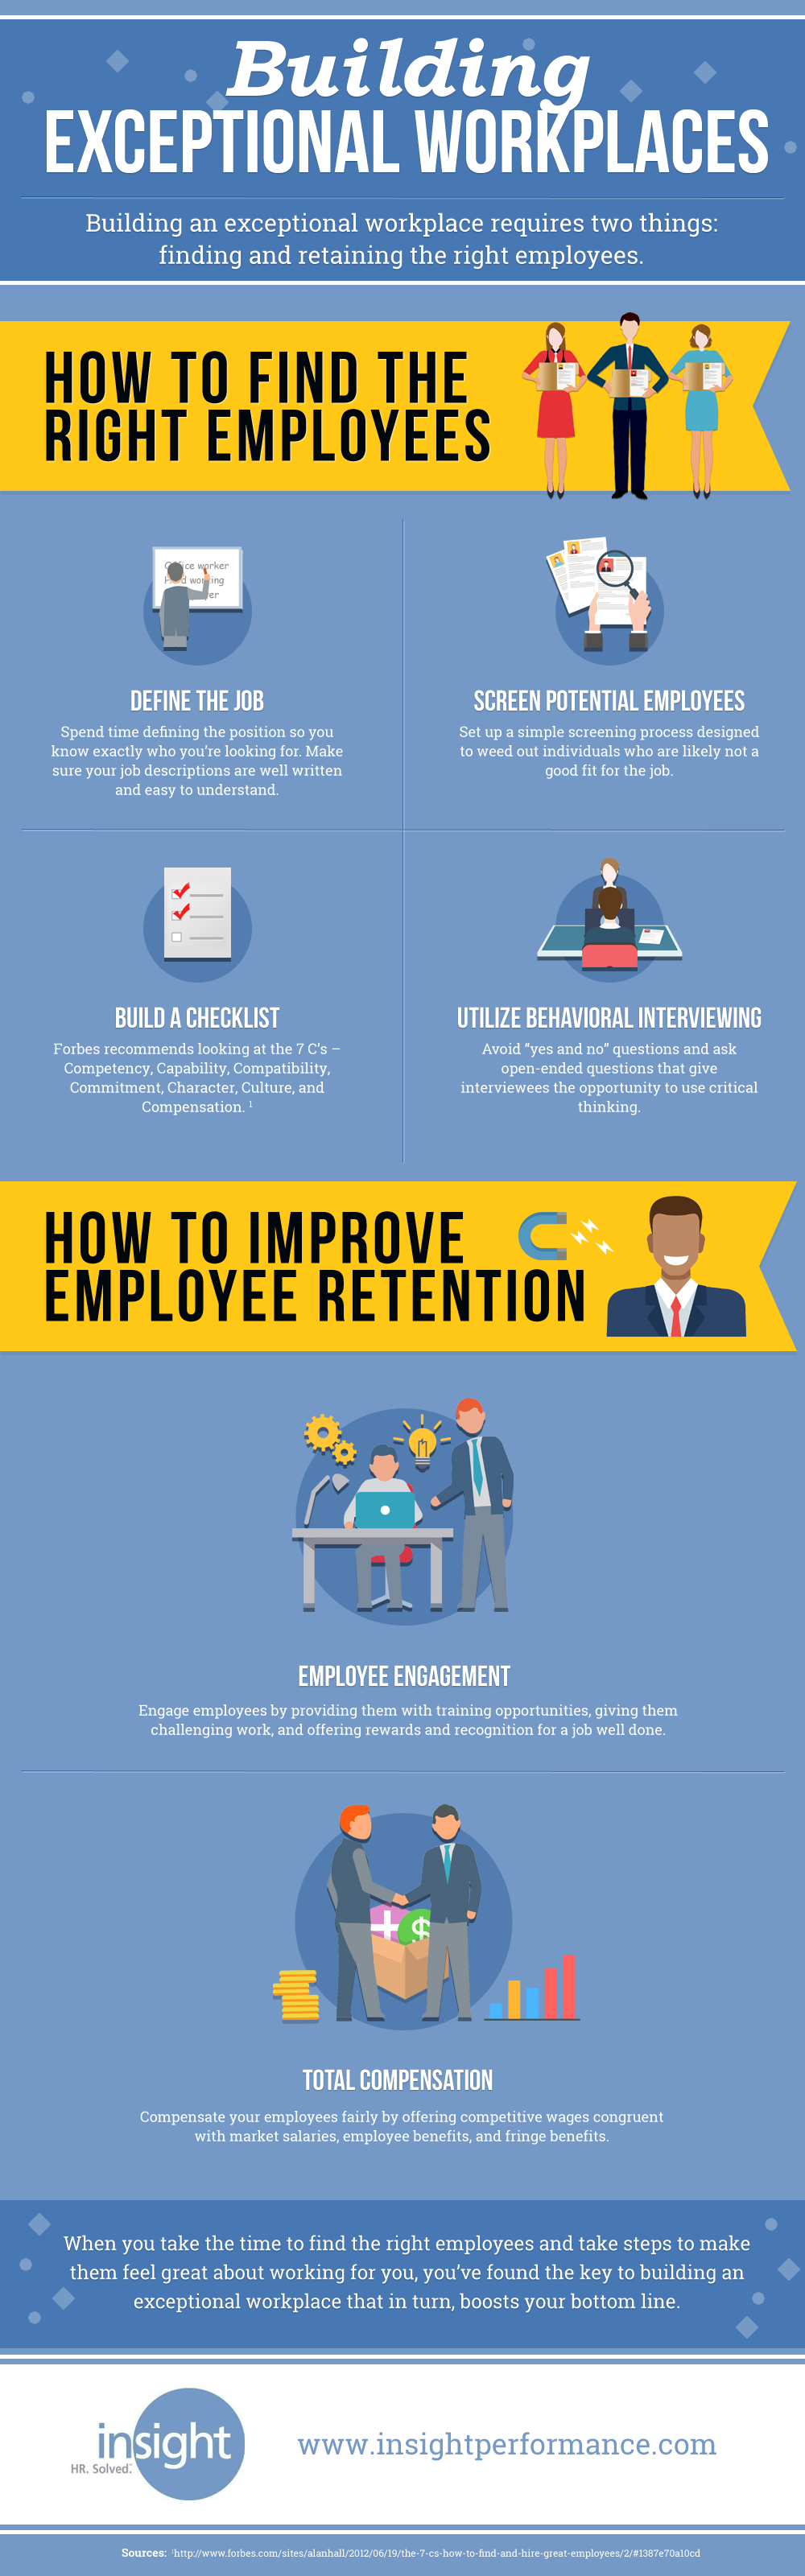 Building-Exceptional-Workplaces-Infographic